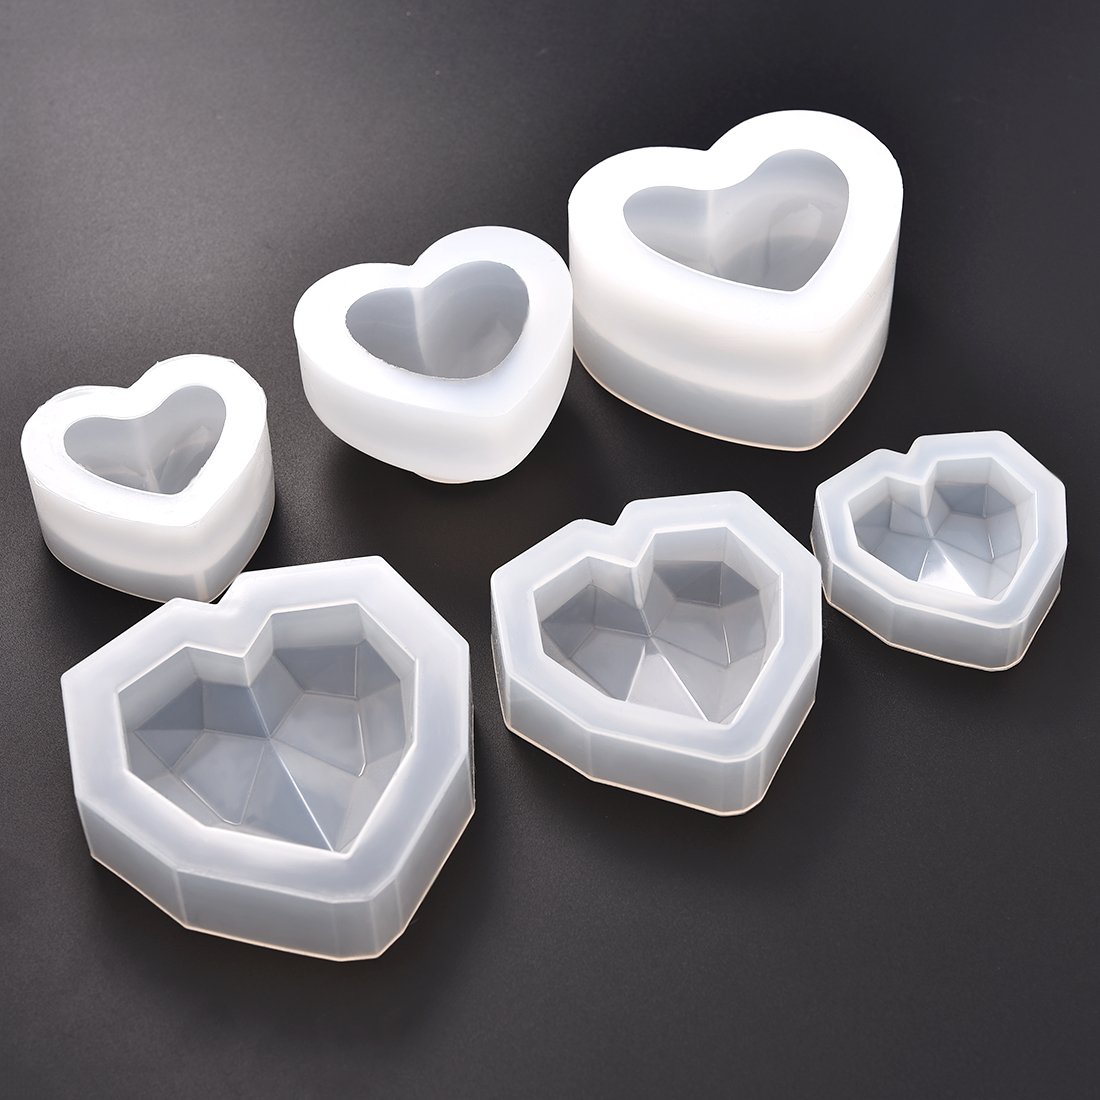 3D Heart Silicone Resin Molds Jewelry Making Mold For UV Epoxy Jewelry Tools DIY Key Chain Pendants